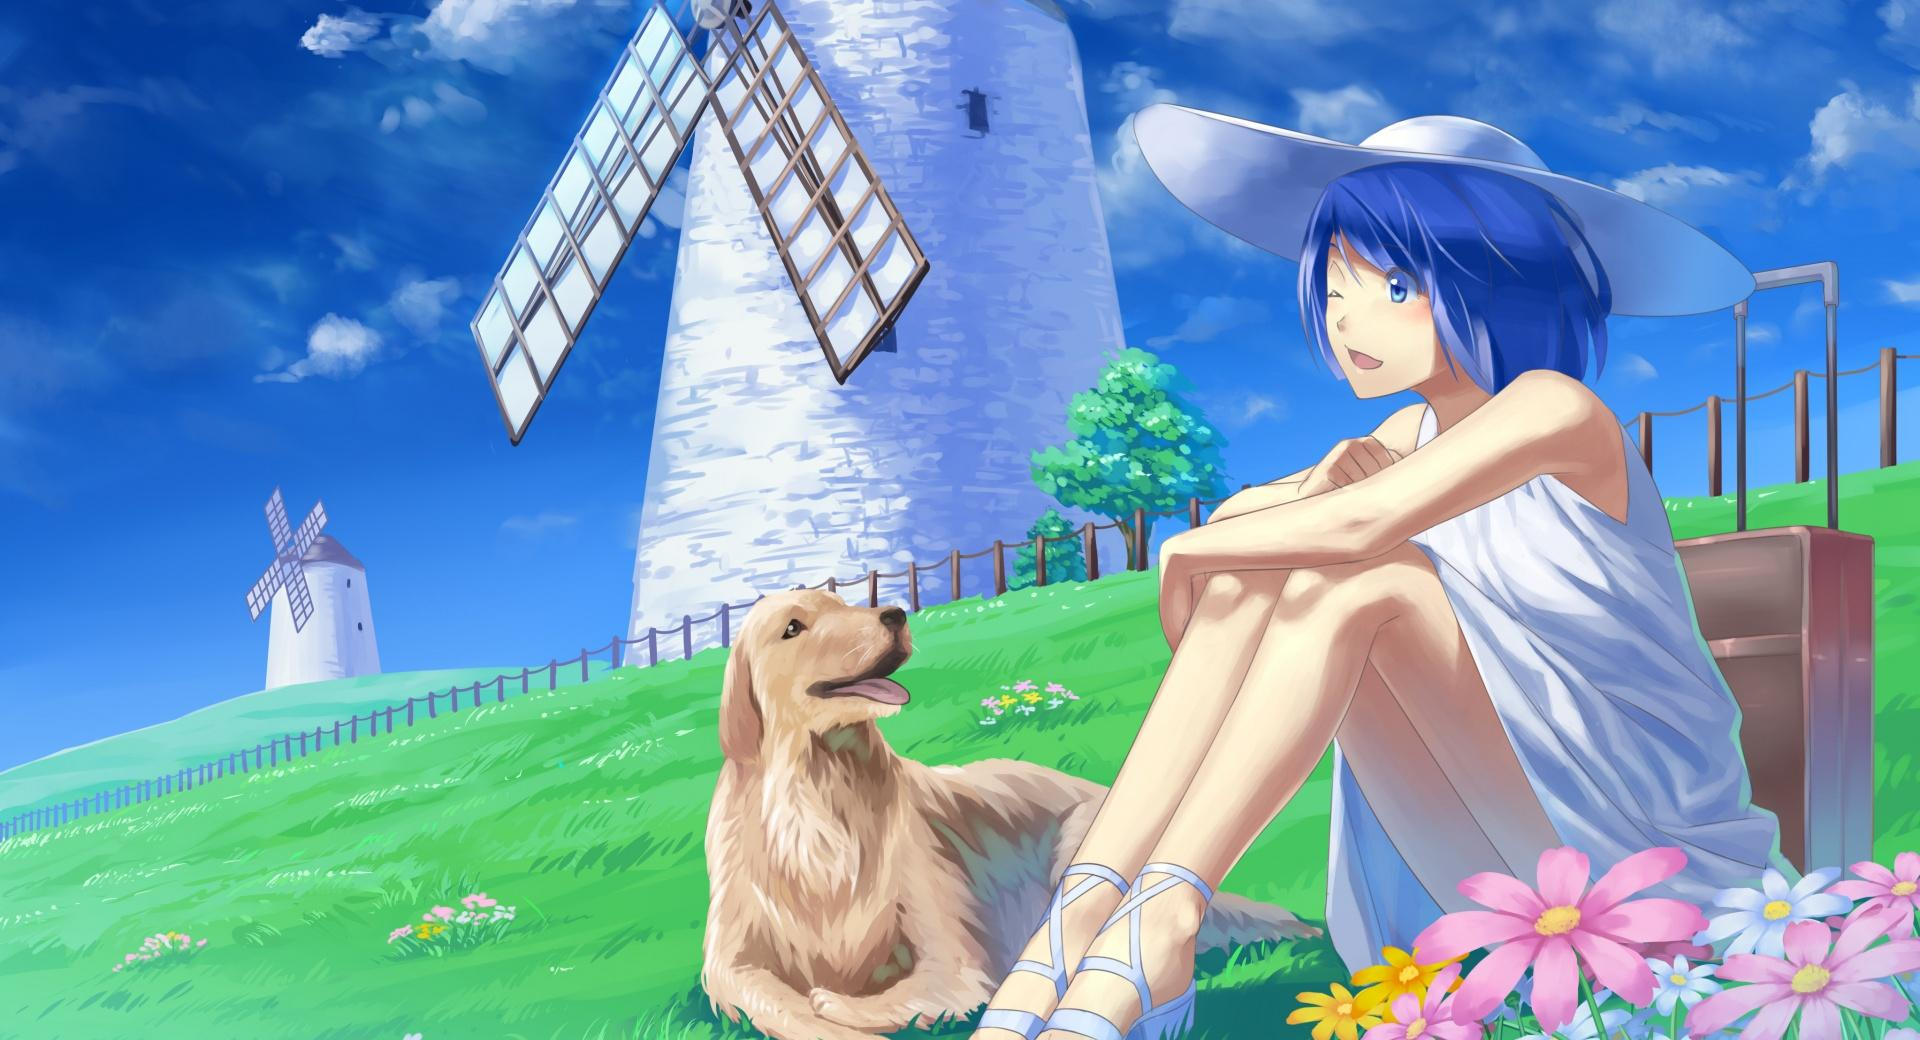 Anime Girl With Her Pet Dog wallpapers HD quality